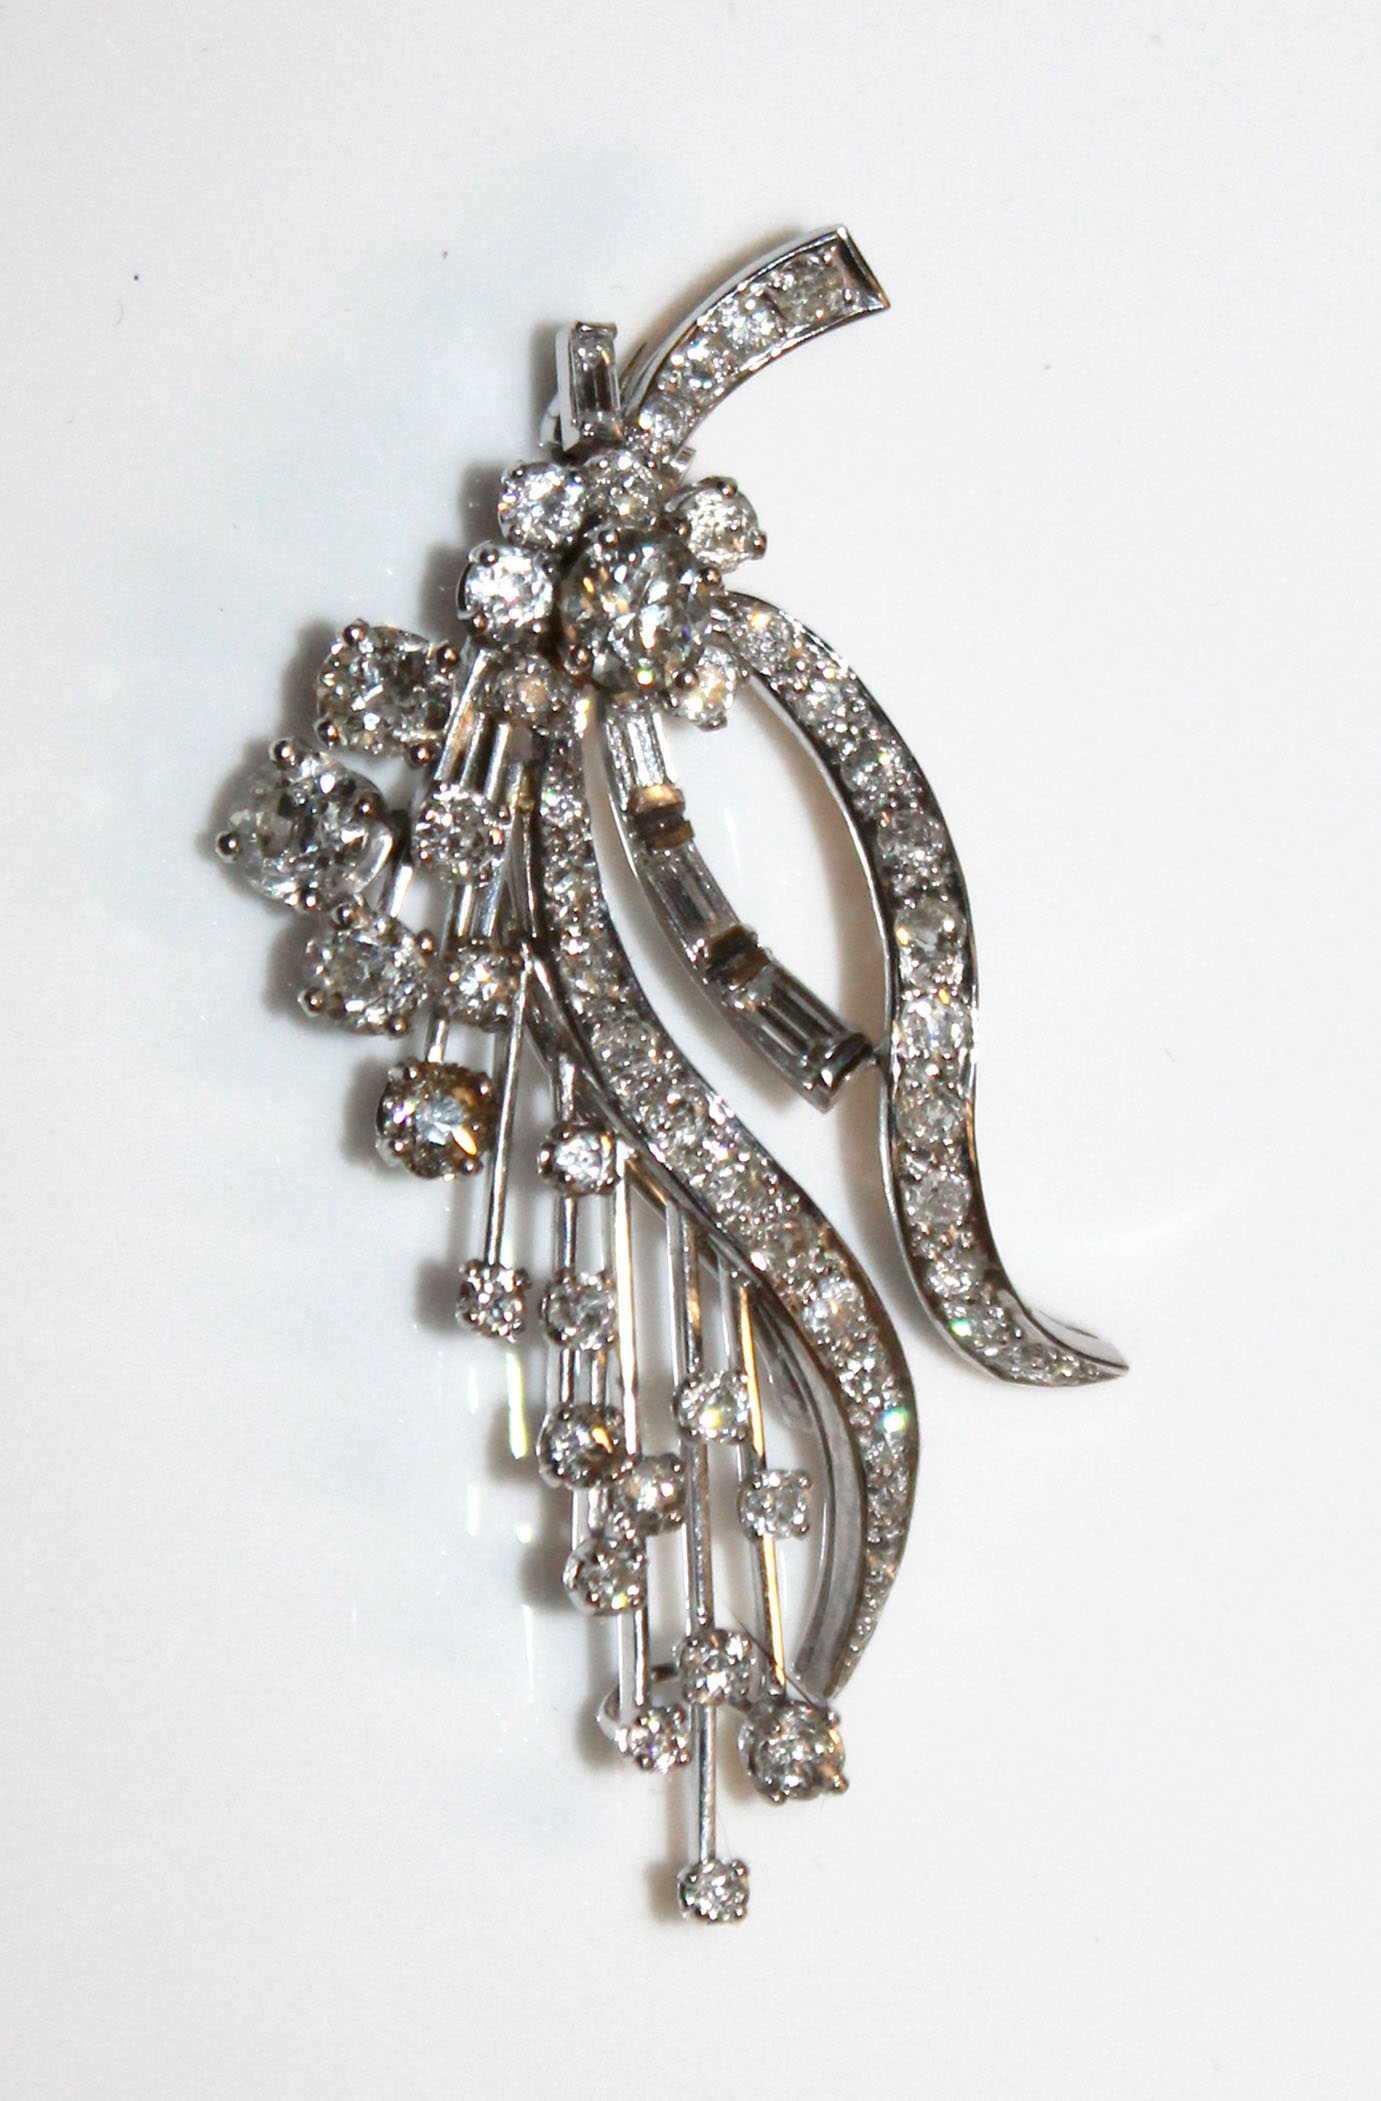 Lot 34 - A VINTAGE PLATINUM AND DIAMOND BROOCH The arrangement of round and baguette cut diamonds forming a